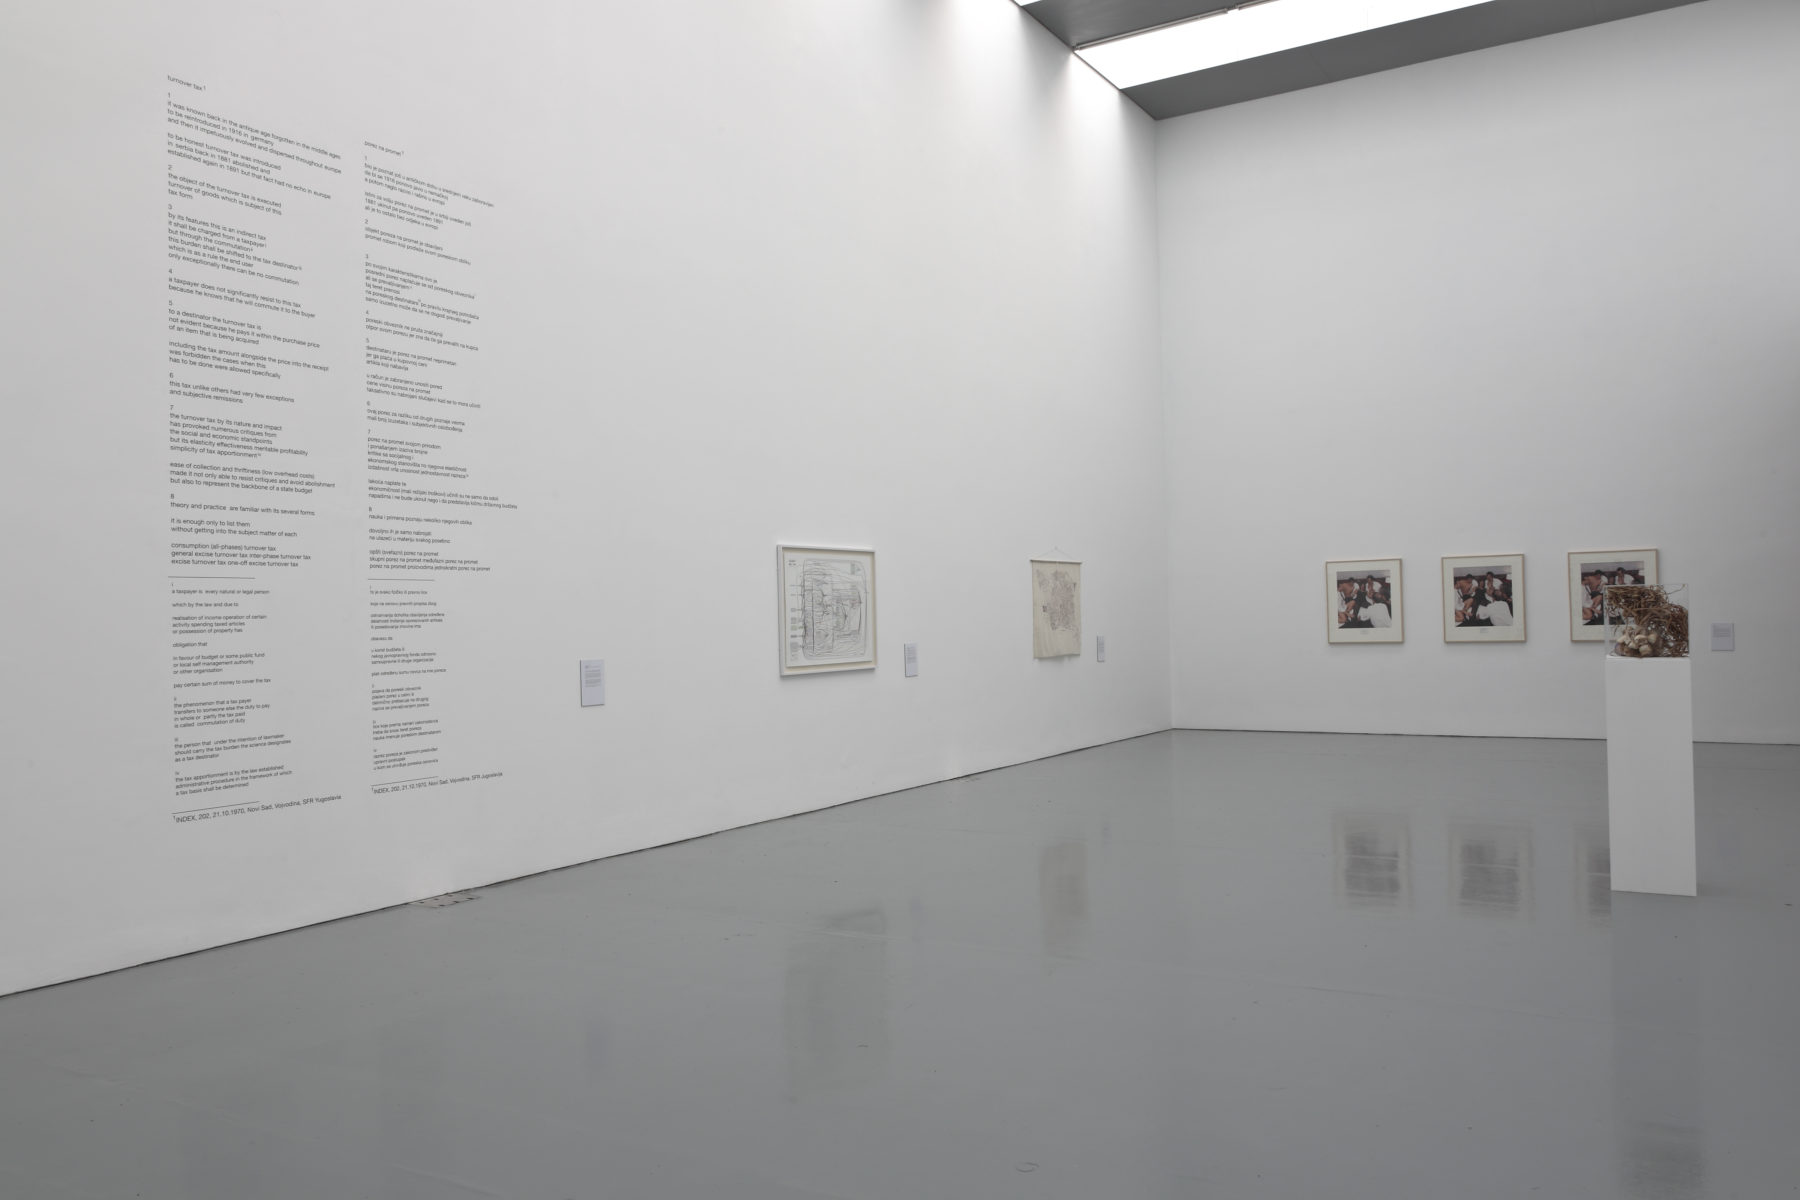 Installation view of Wealth of Nations (2010). The gallery is light and the walls are white. Five pictures hang on the walls and a plinth has a sculpture made from twigs atop it.